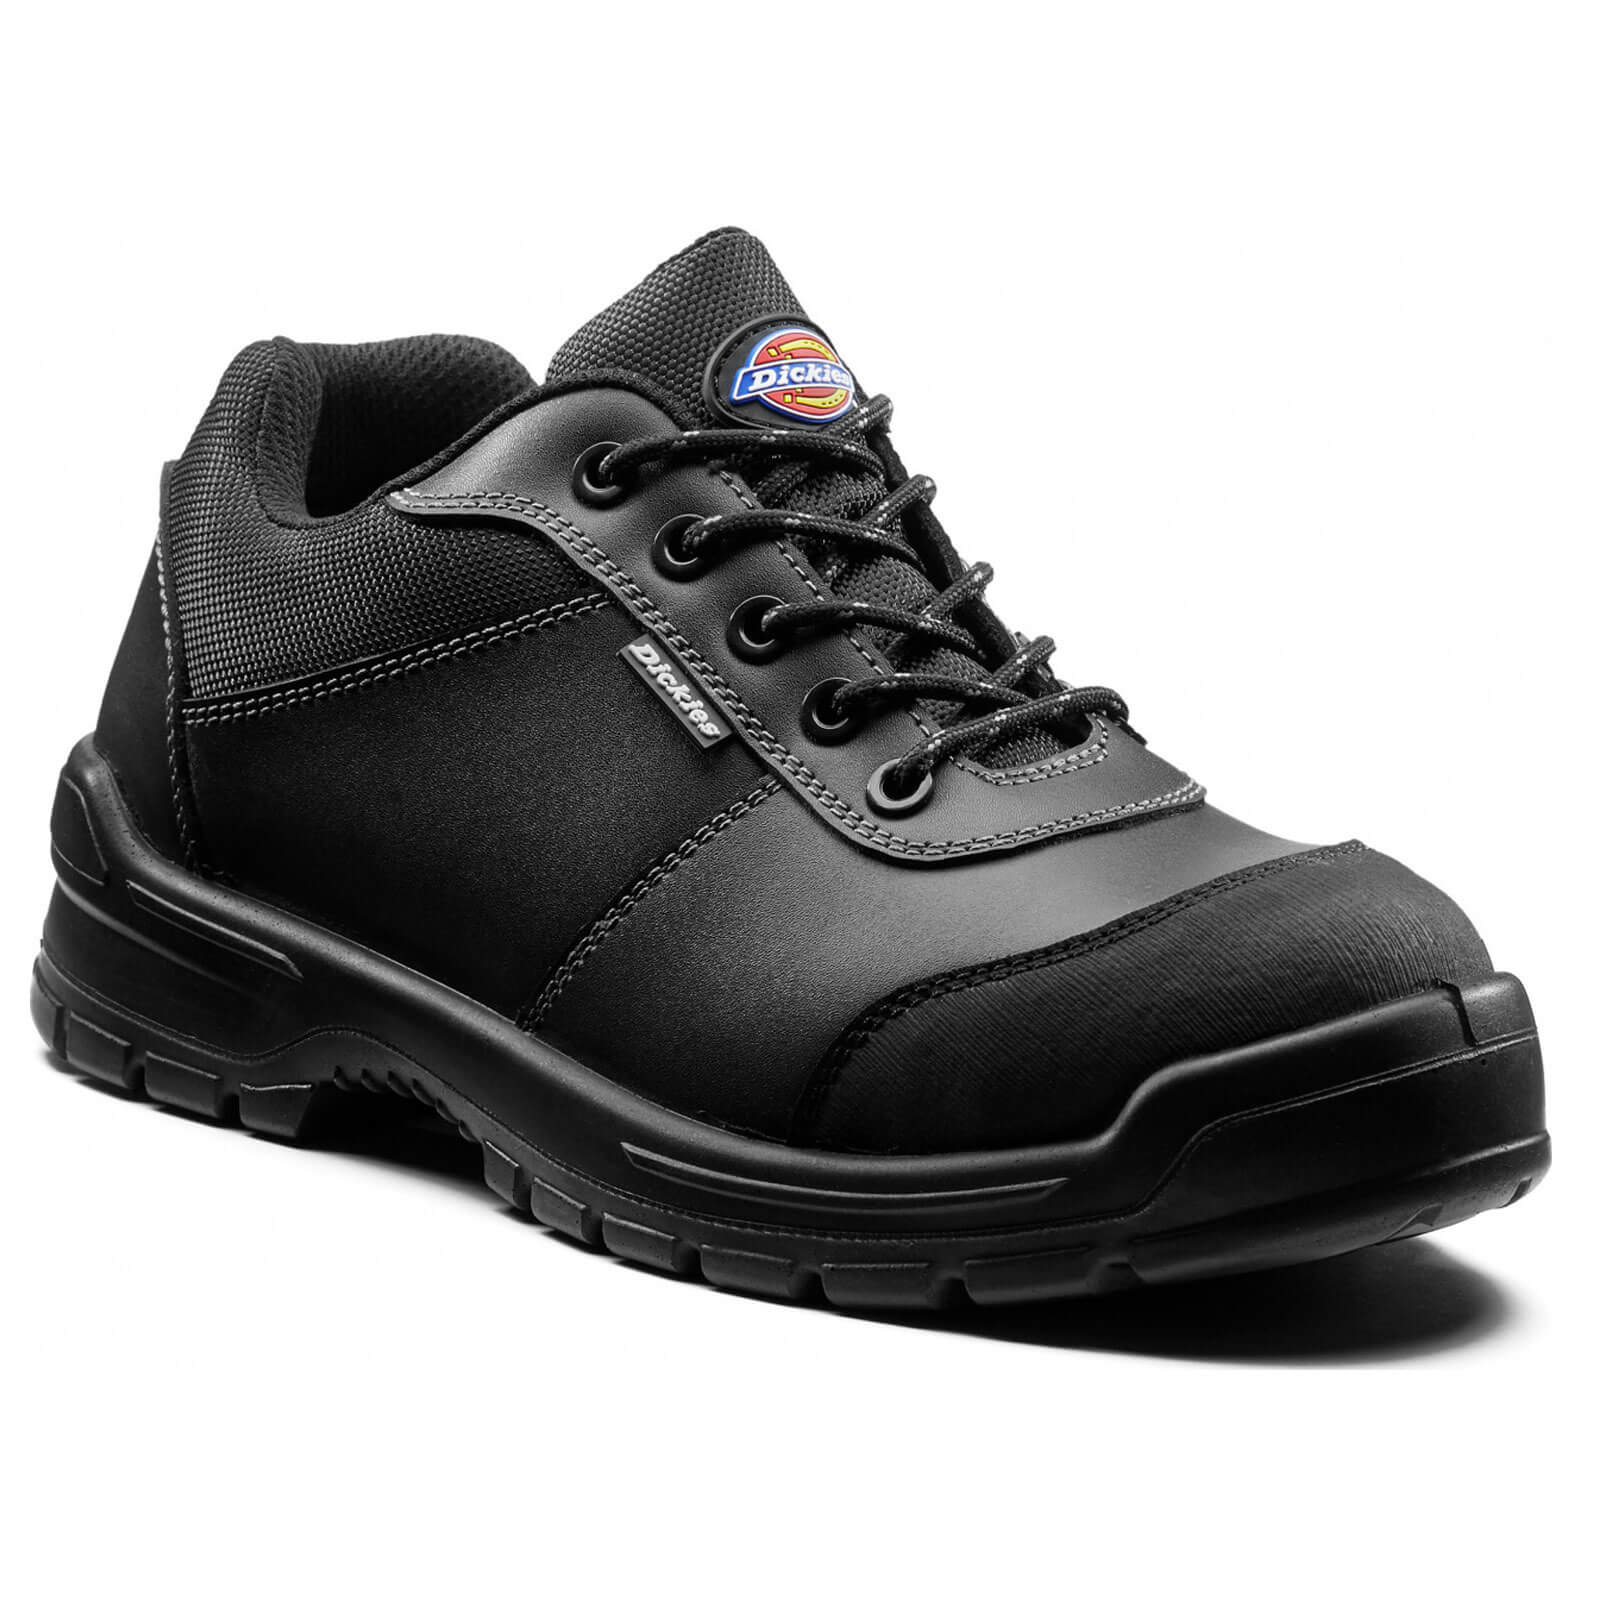 Image of Dickies Andover Shoe Black Size 10